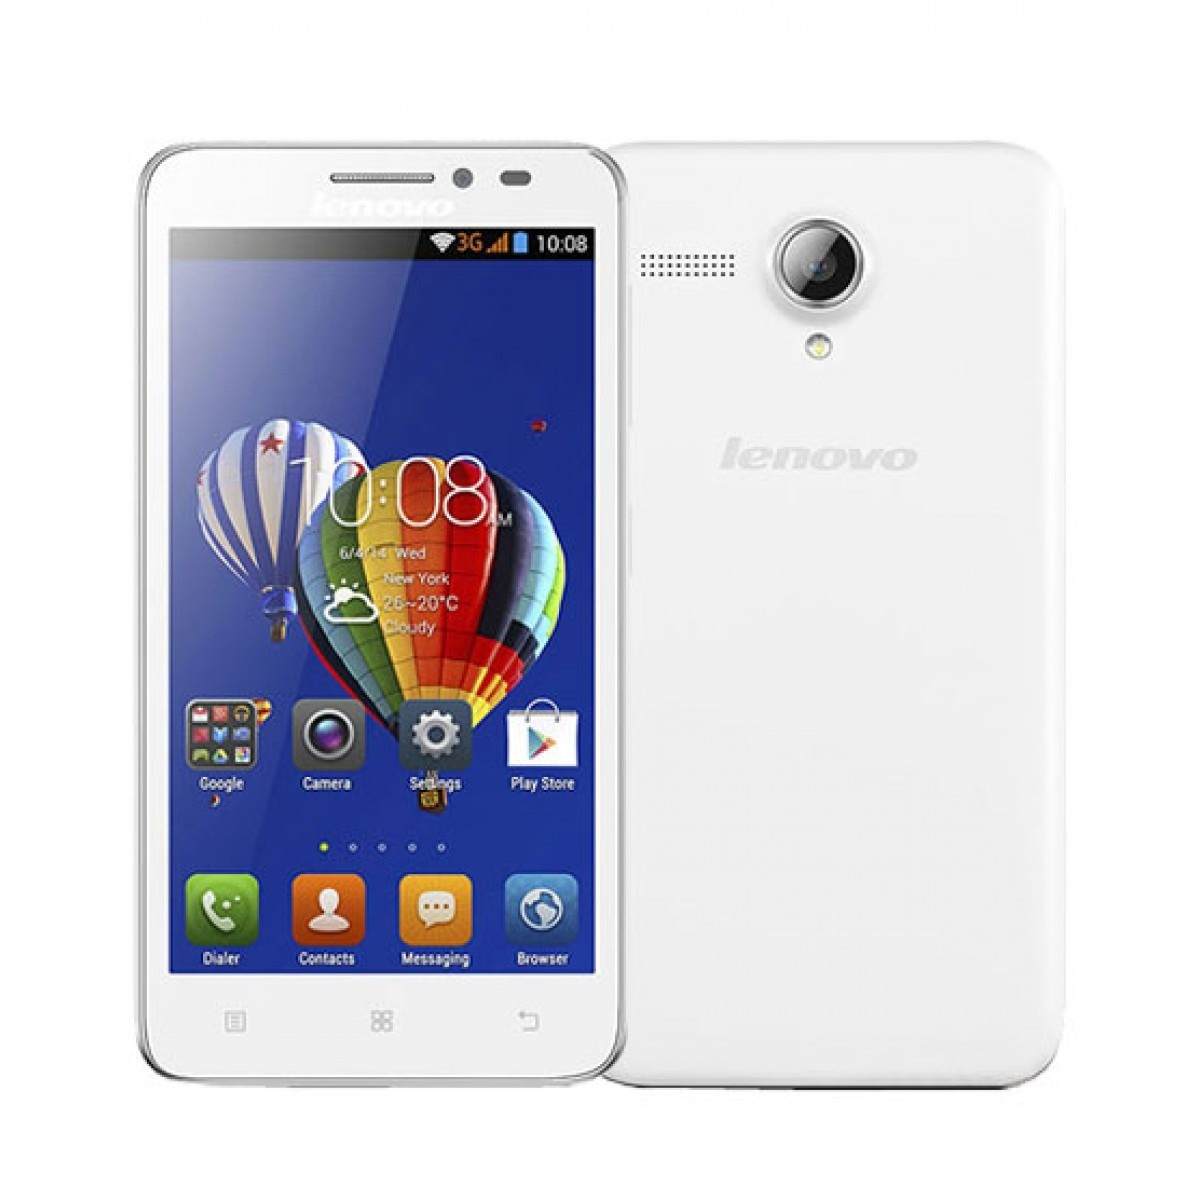 lenovo a606 flash file